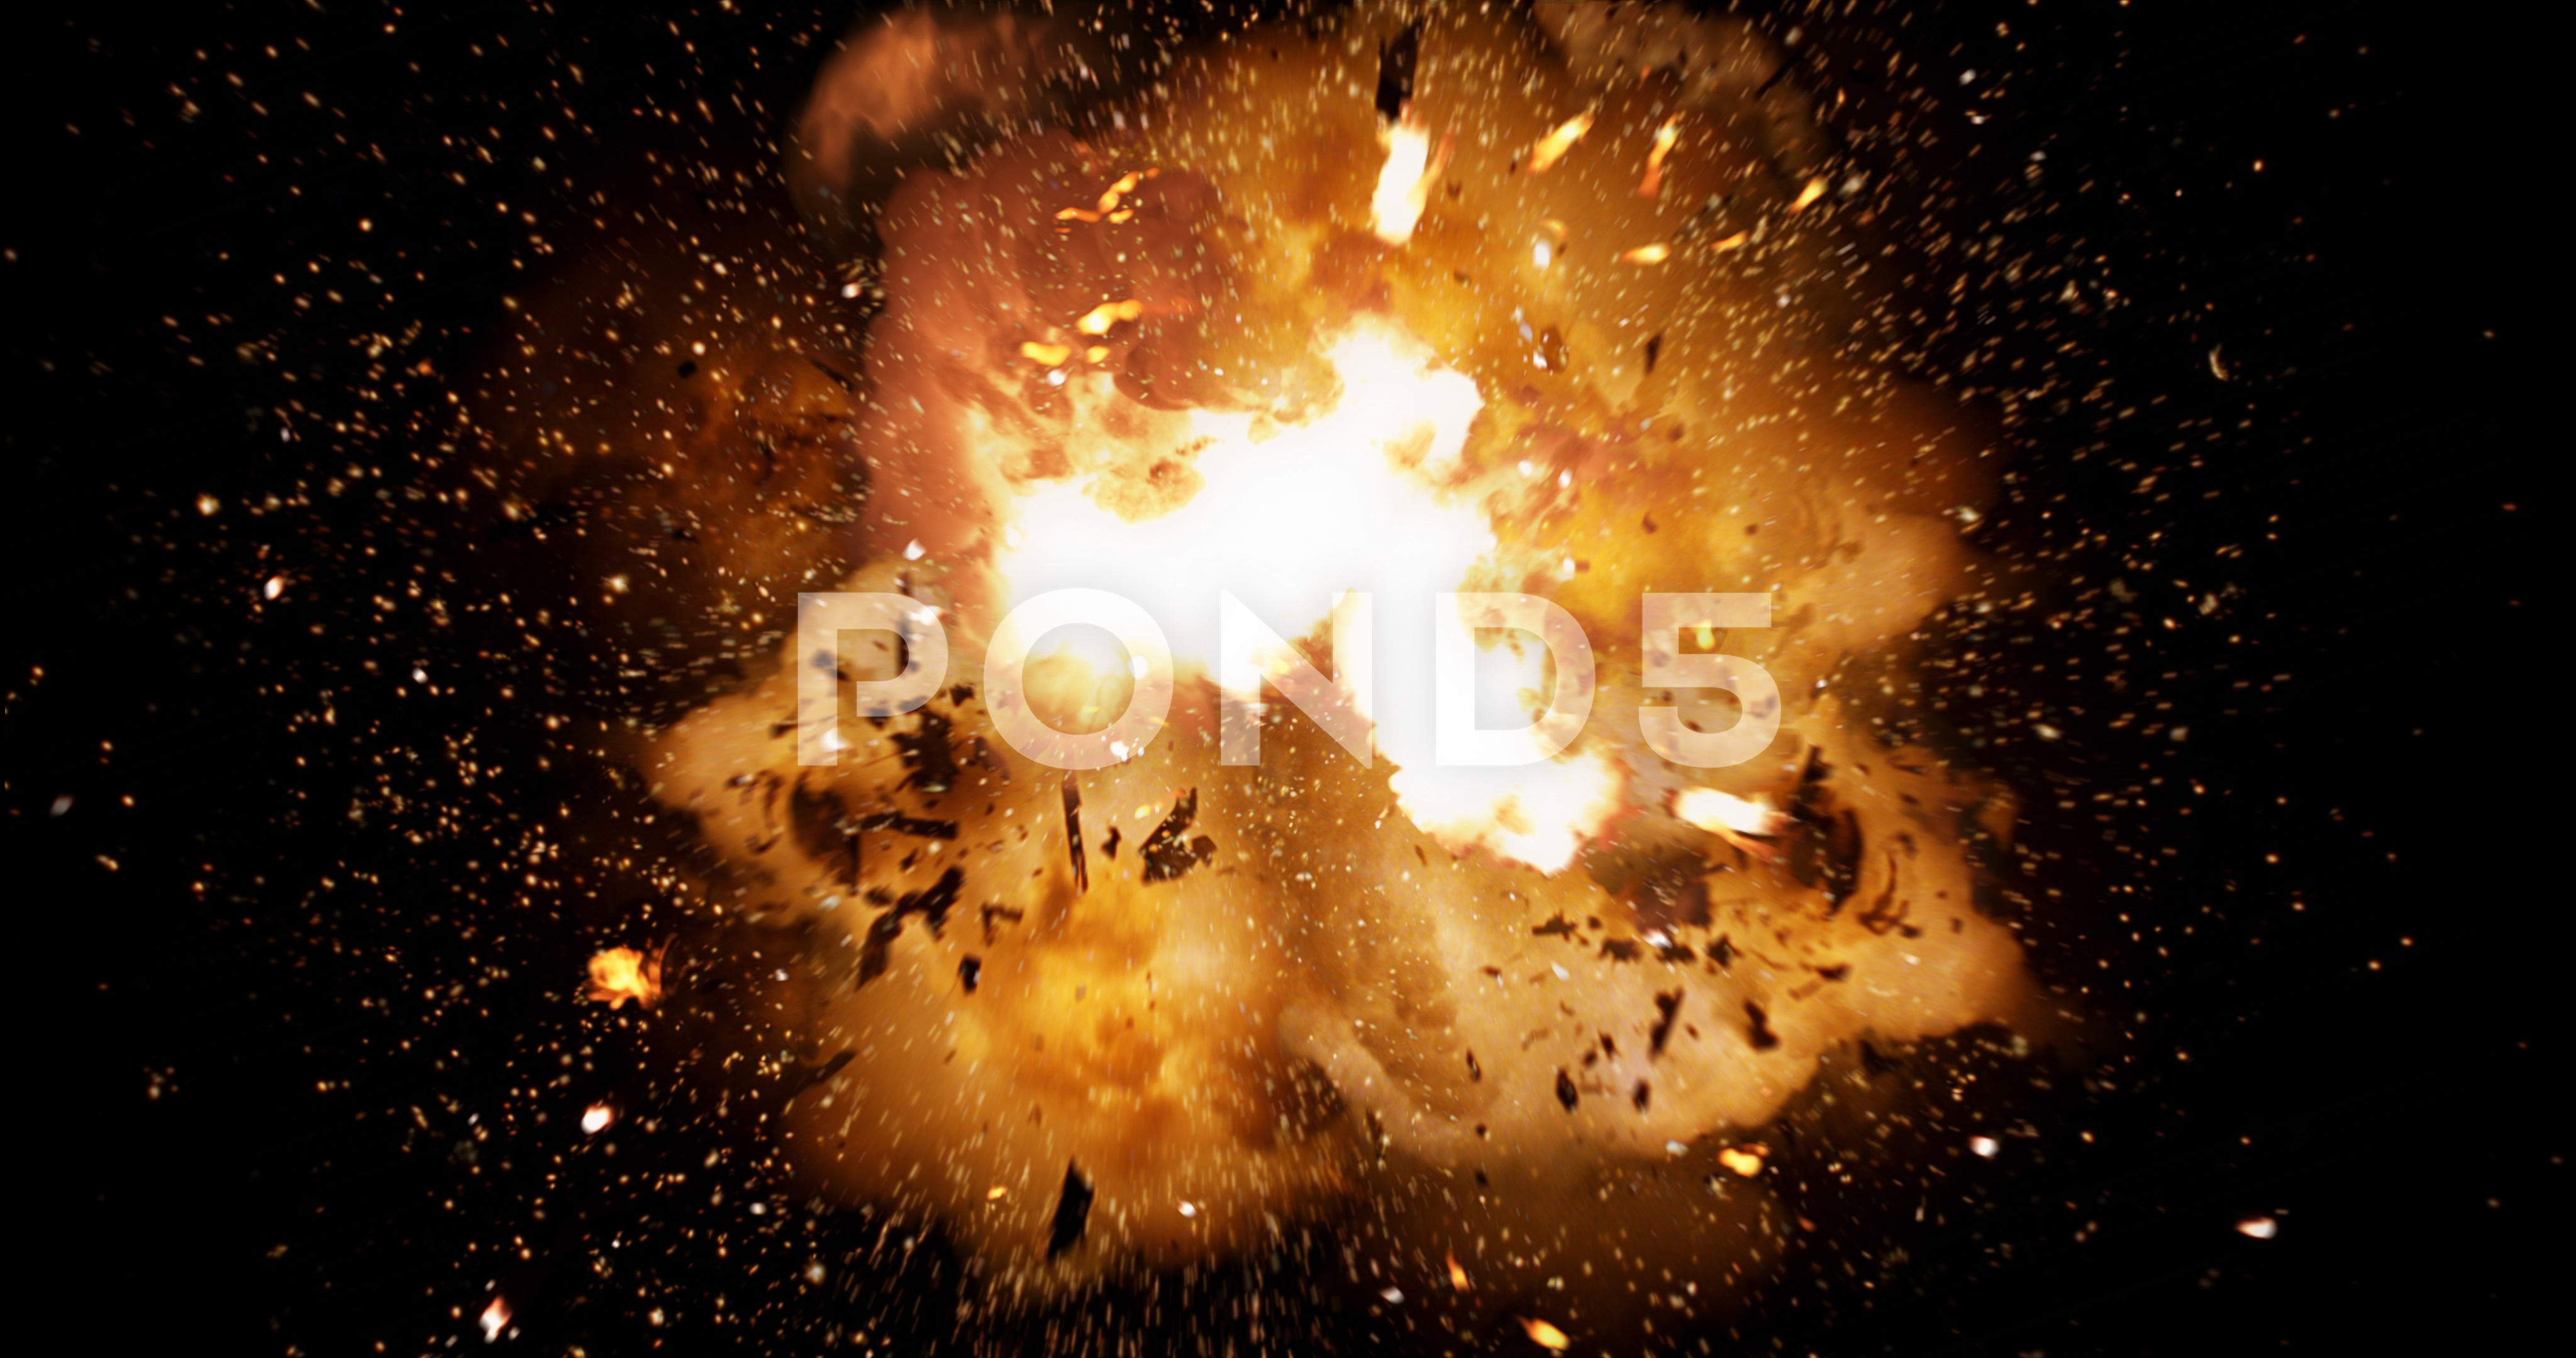 Explosion Stock Footage ~ Royalty Free Stock Videos | Pond5